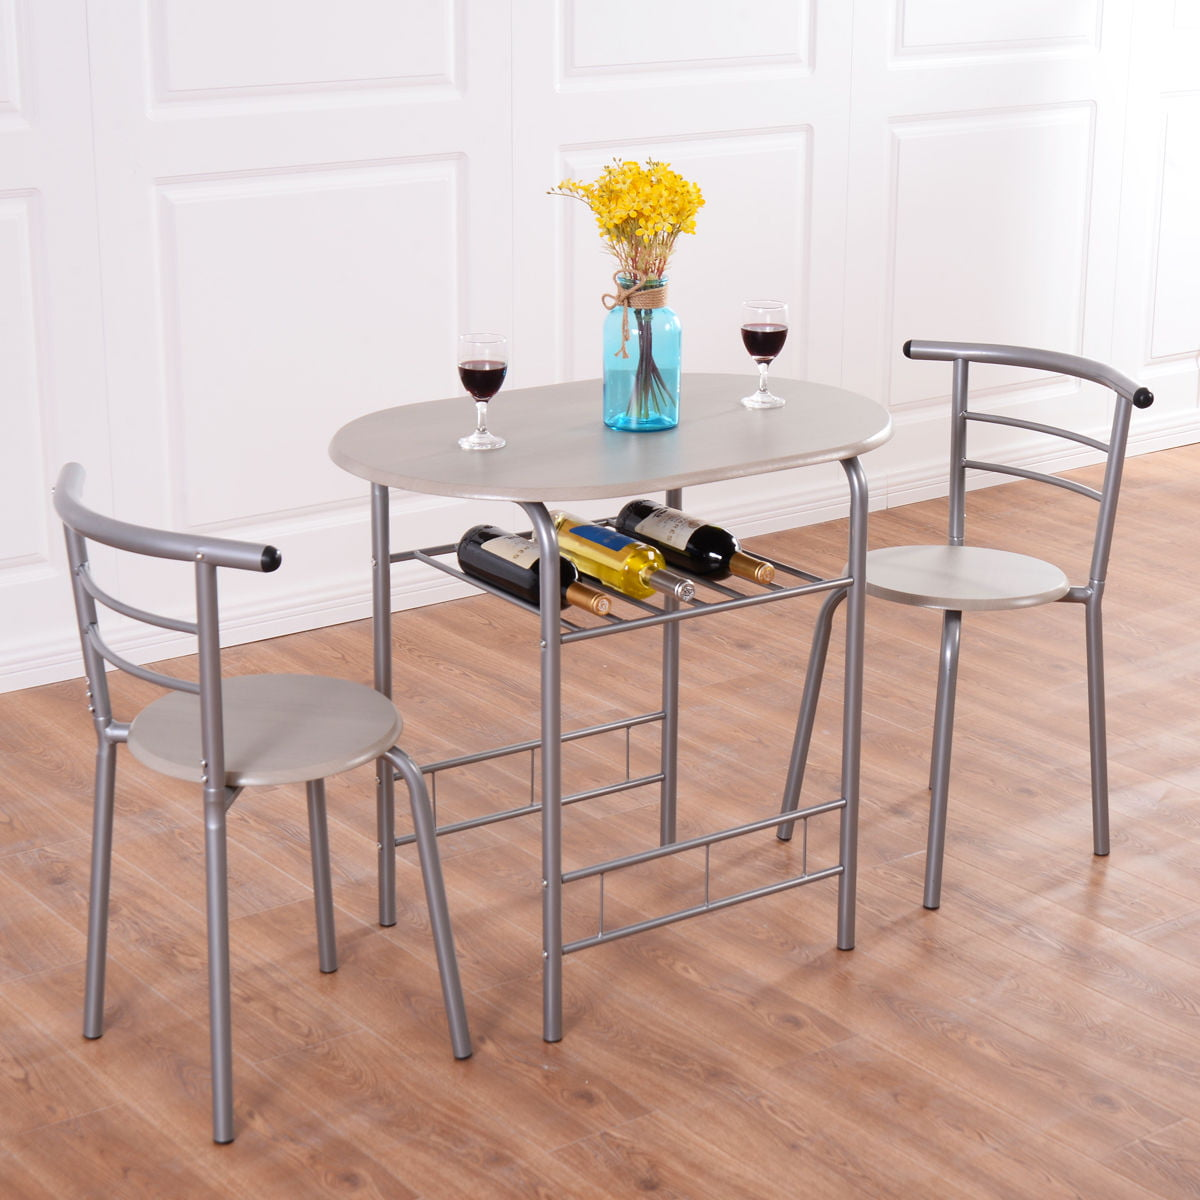 Costway 3 Piece Dining Set Table 2